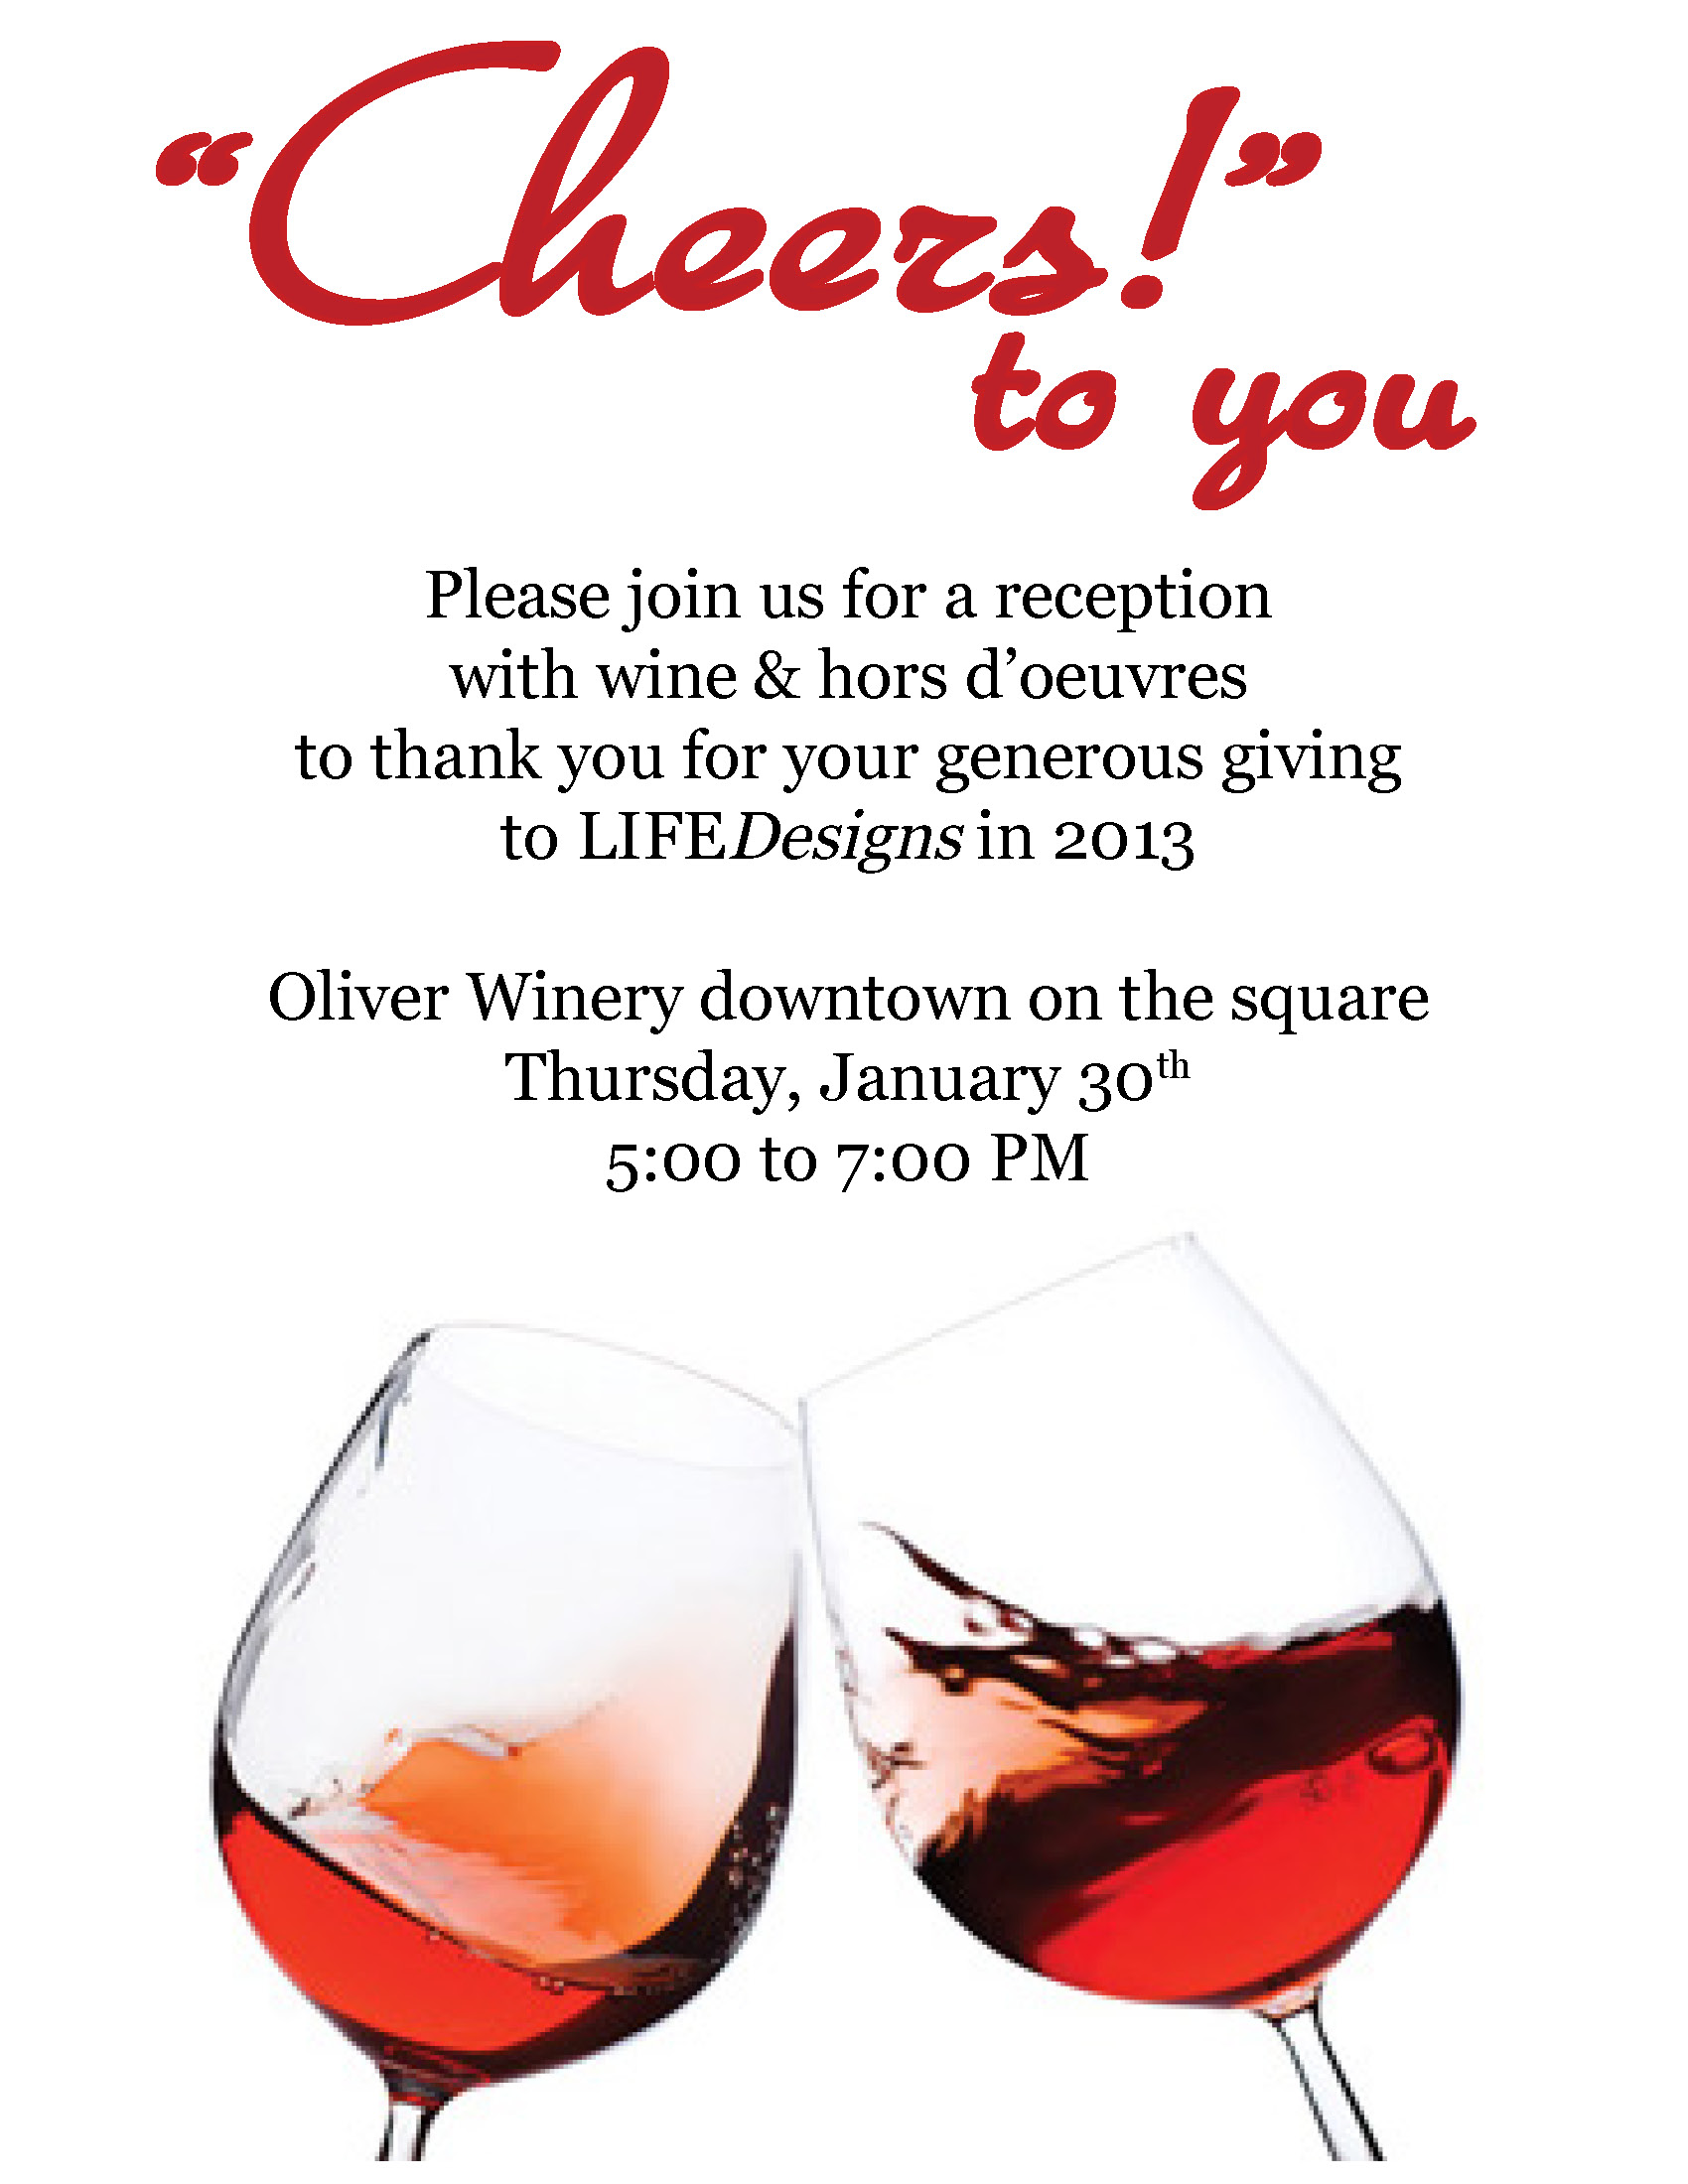 News lifedesigns part 5 donor reception einvitation 2014 stopboris Images